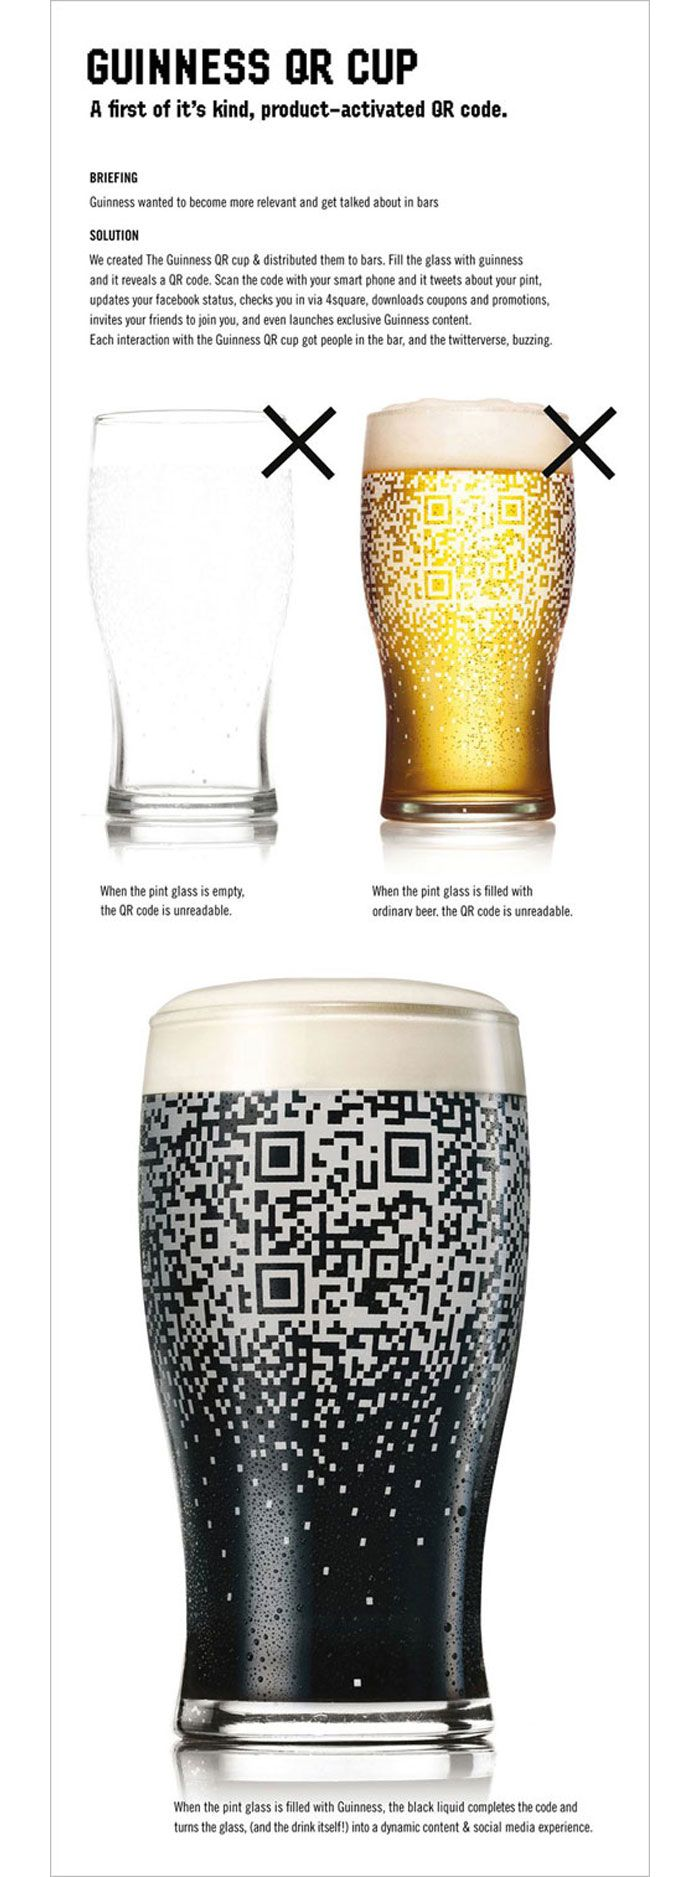 For all the QR code fans. Only works with Guinness